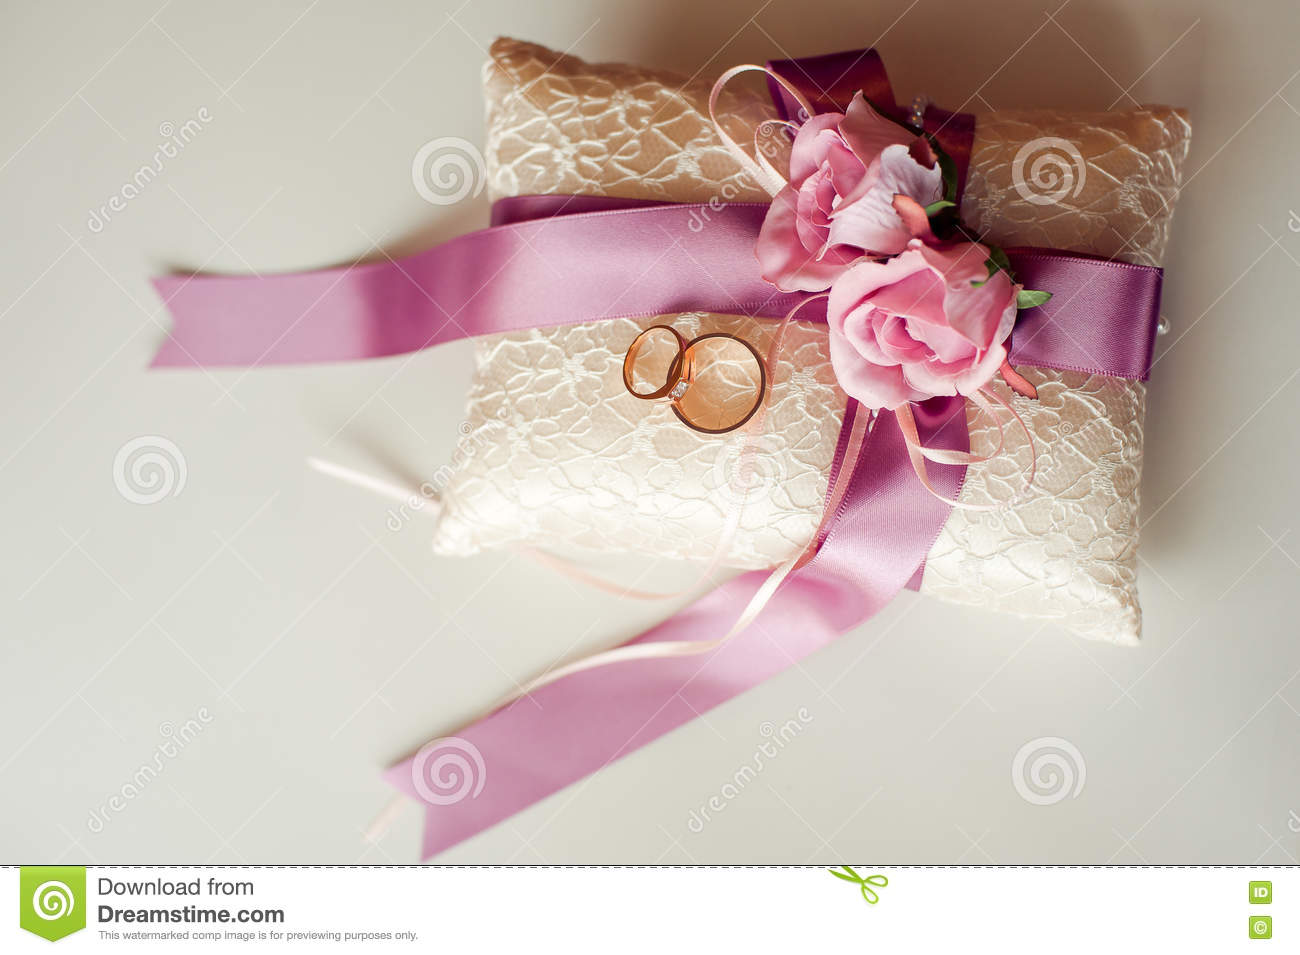 Pillow With Wedding Rings Purple Ribbons Stock Photo - Image of ...